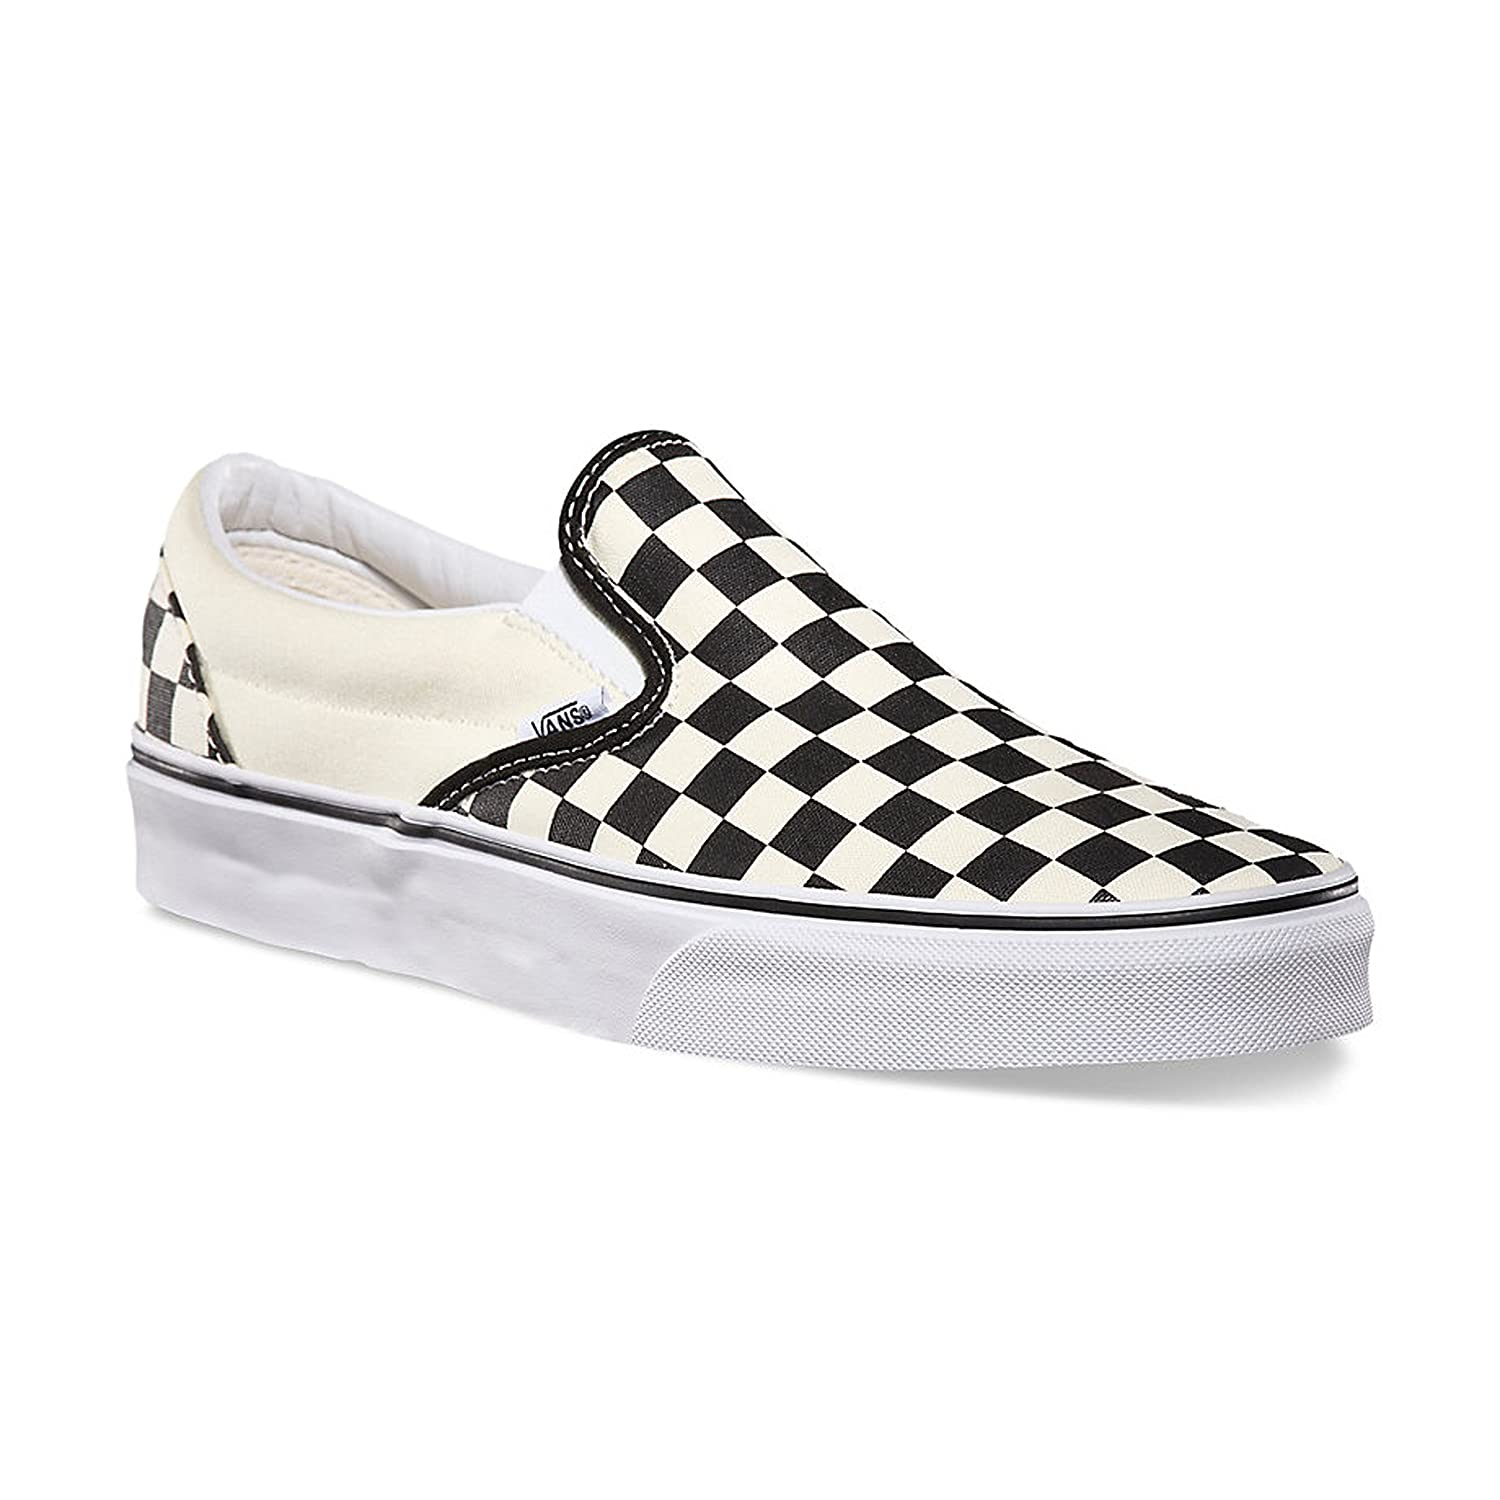 Vans Unisex-Erwachsene Classic Slip-on Slipper  48,5 EU M Damen|Black Off White Checkerboard